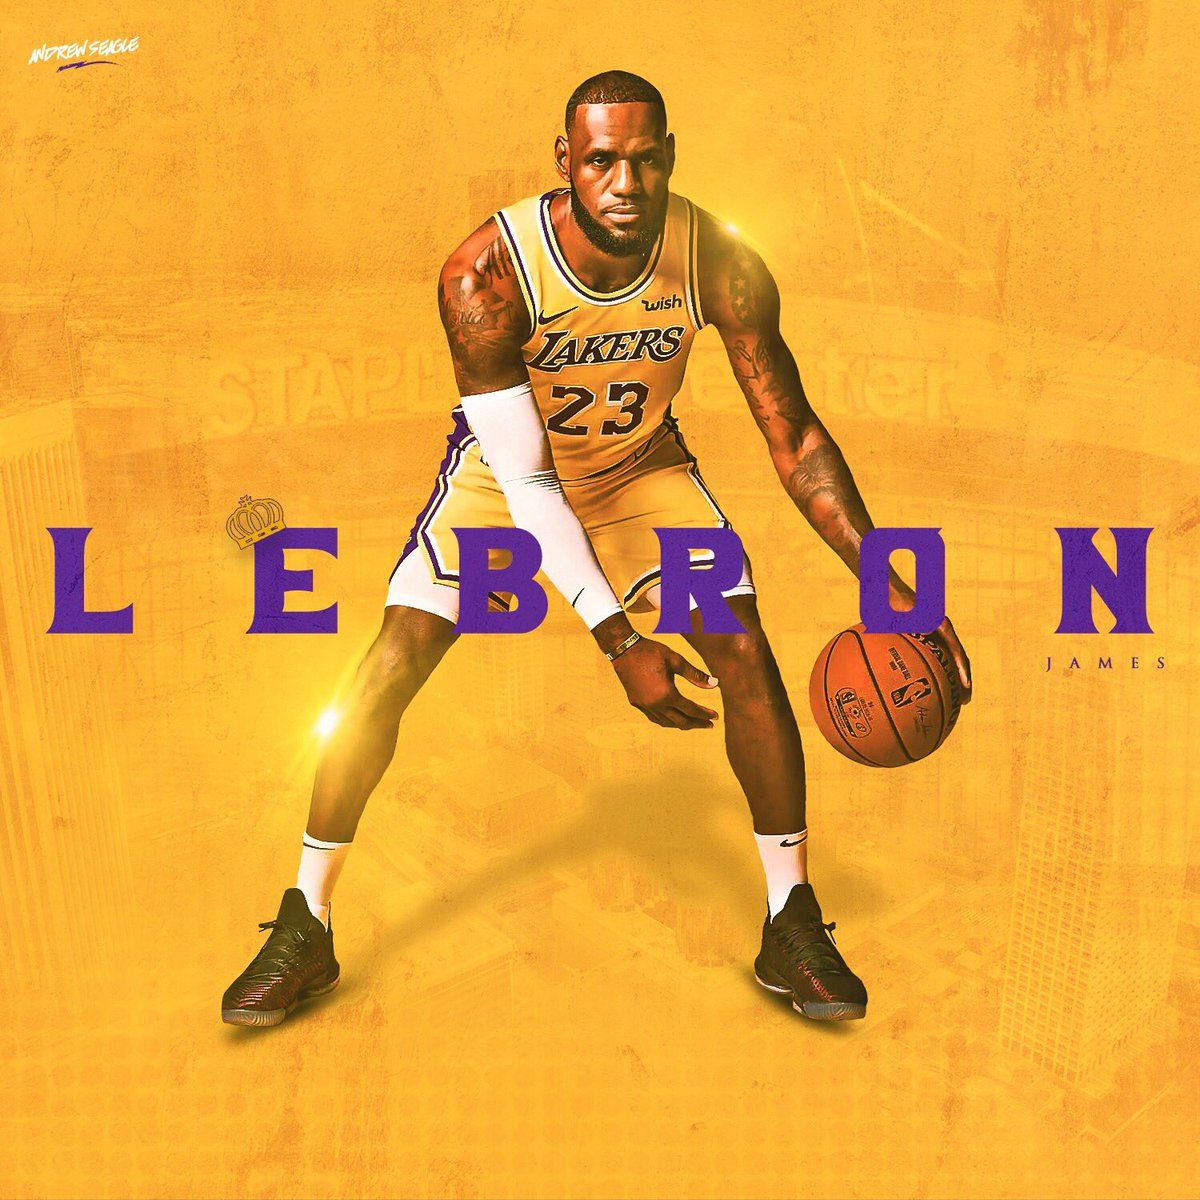 Lebron James Wallpaper Iphone: LeBron James Lakers Wallpapers